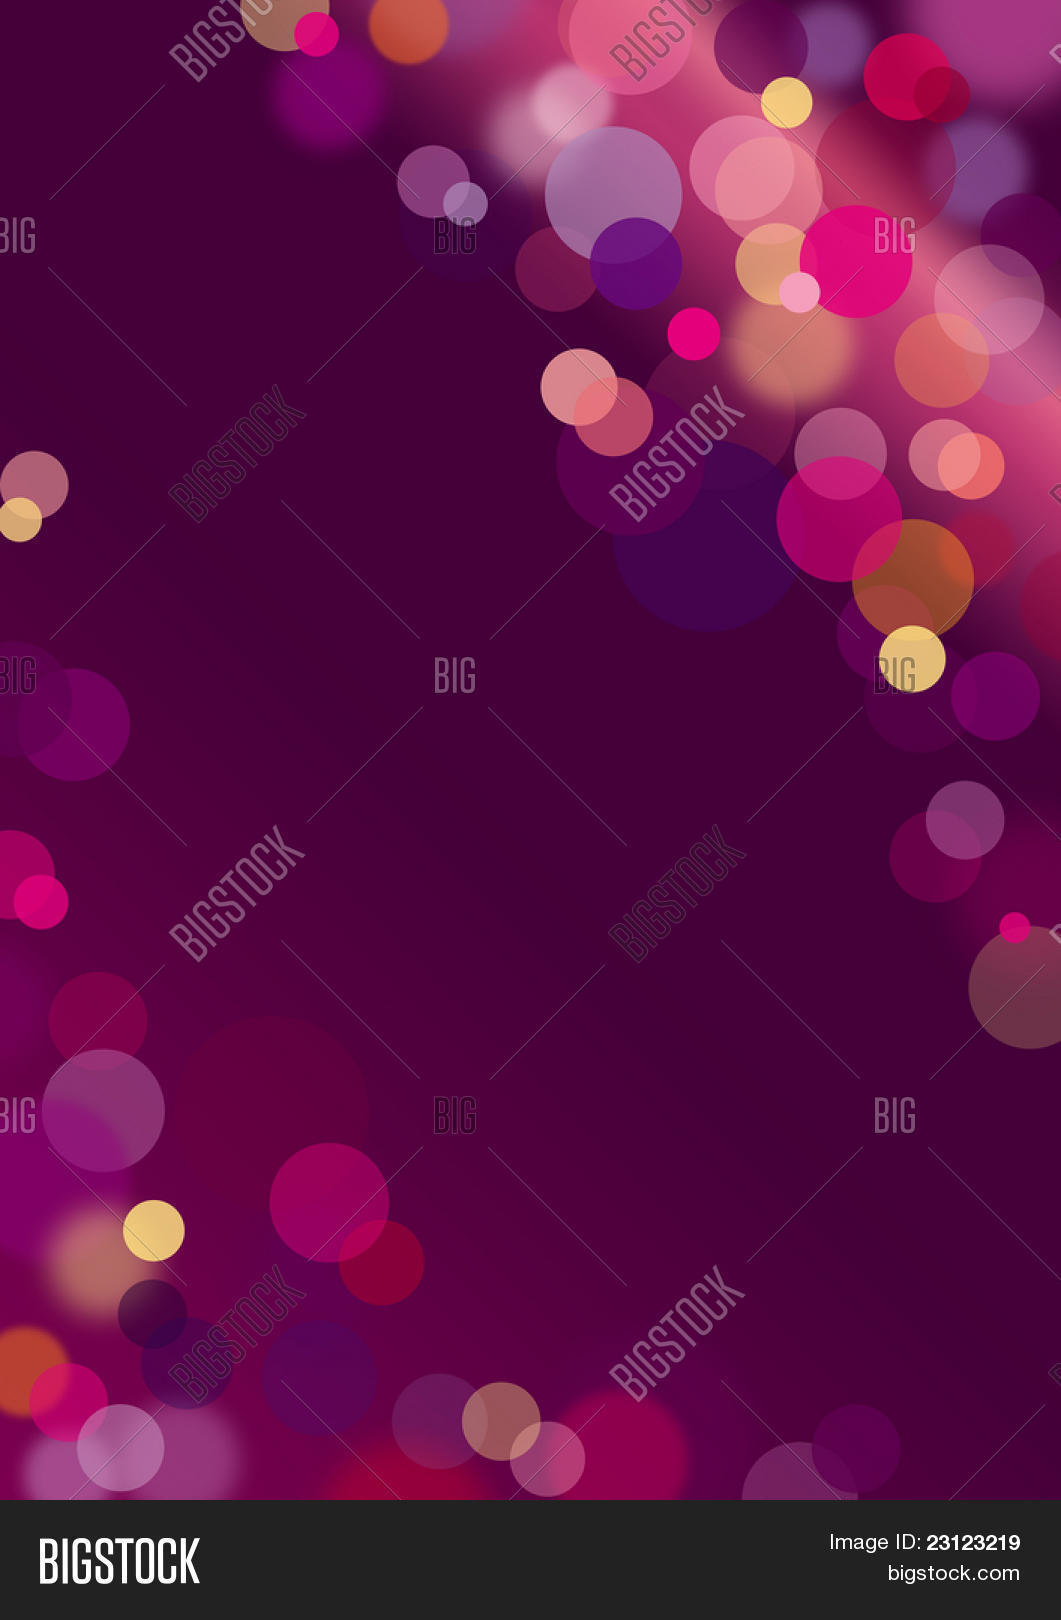 glamour purple image photo free trial bigstock